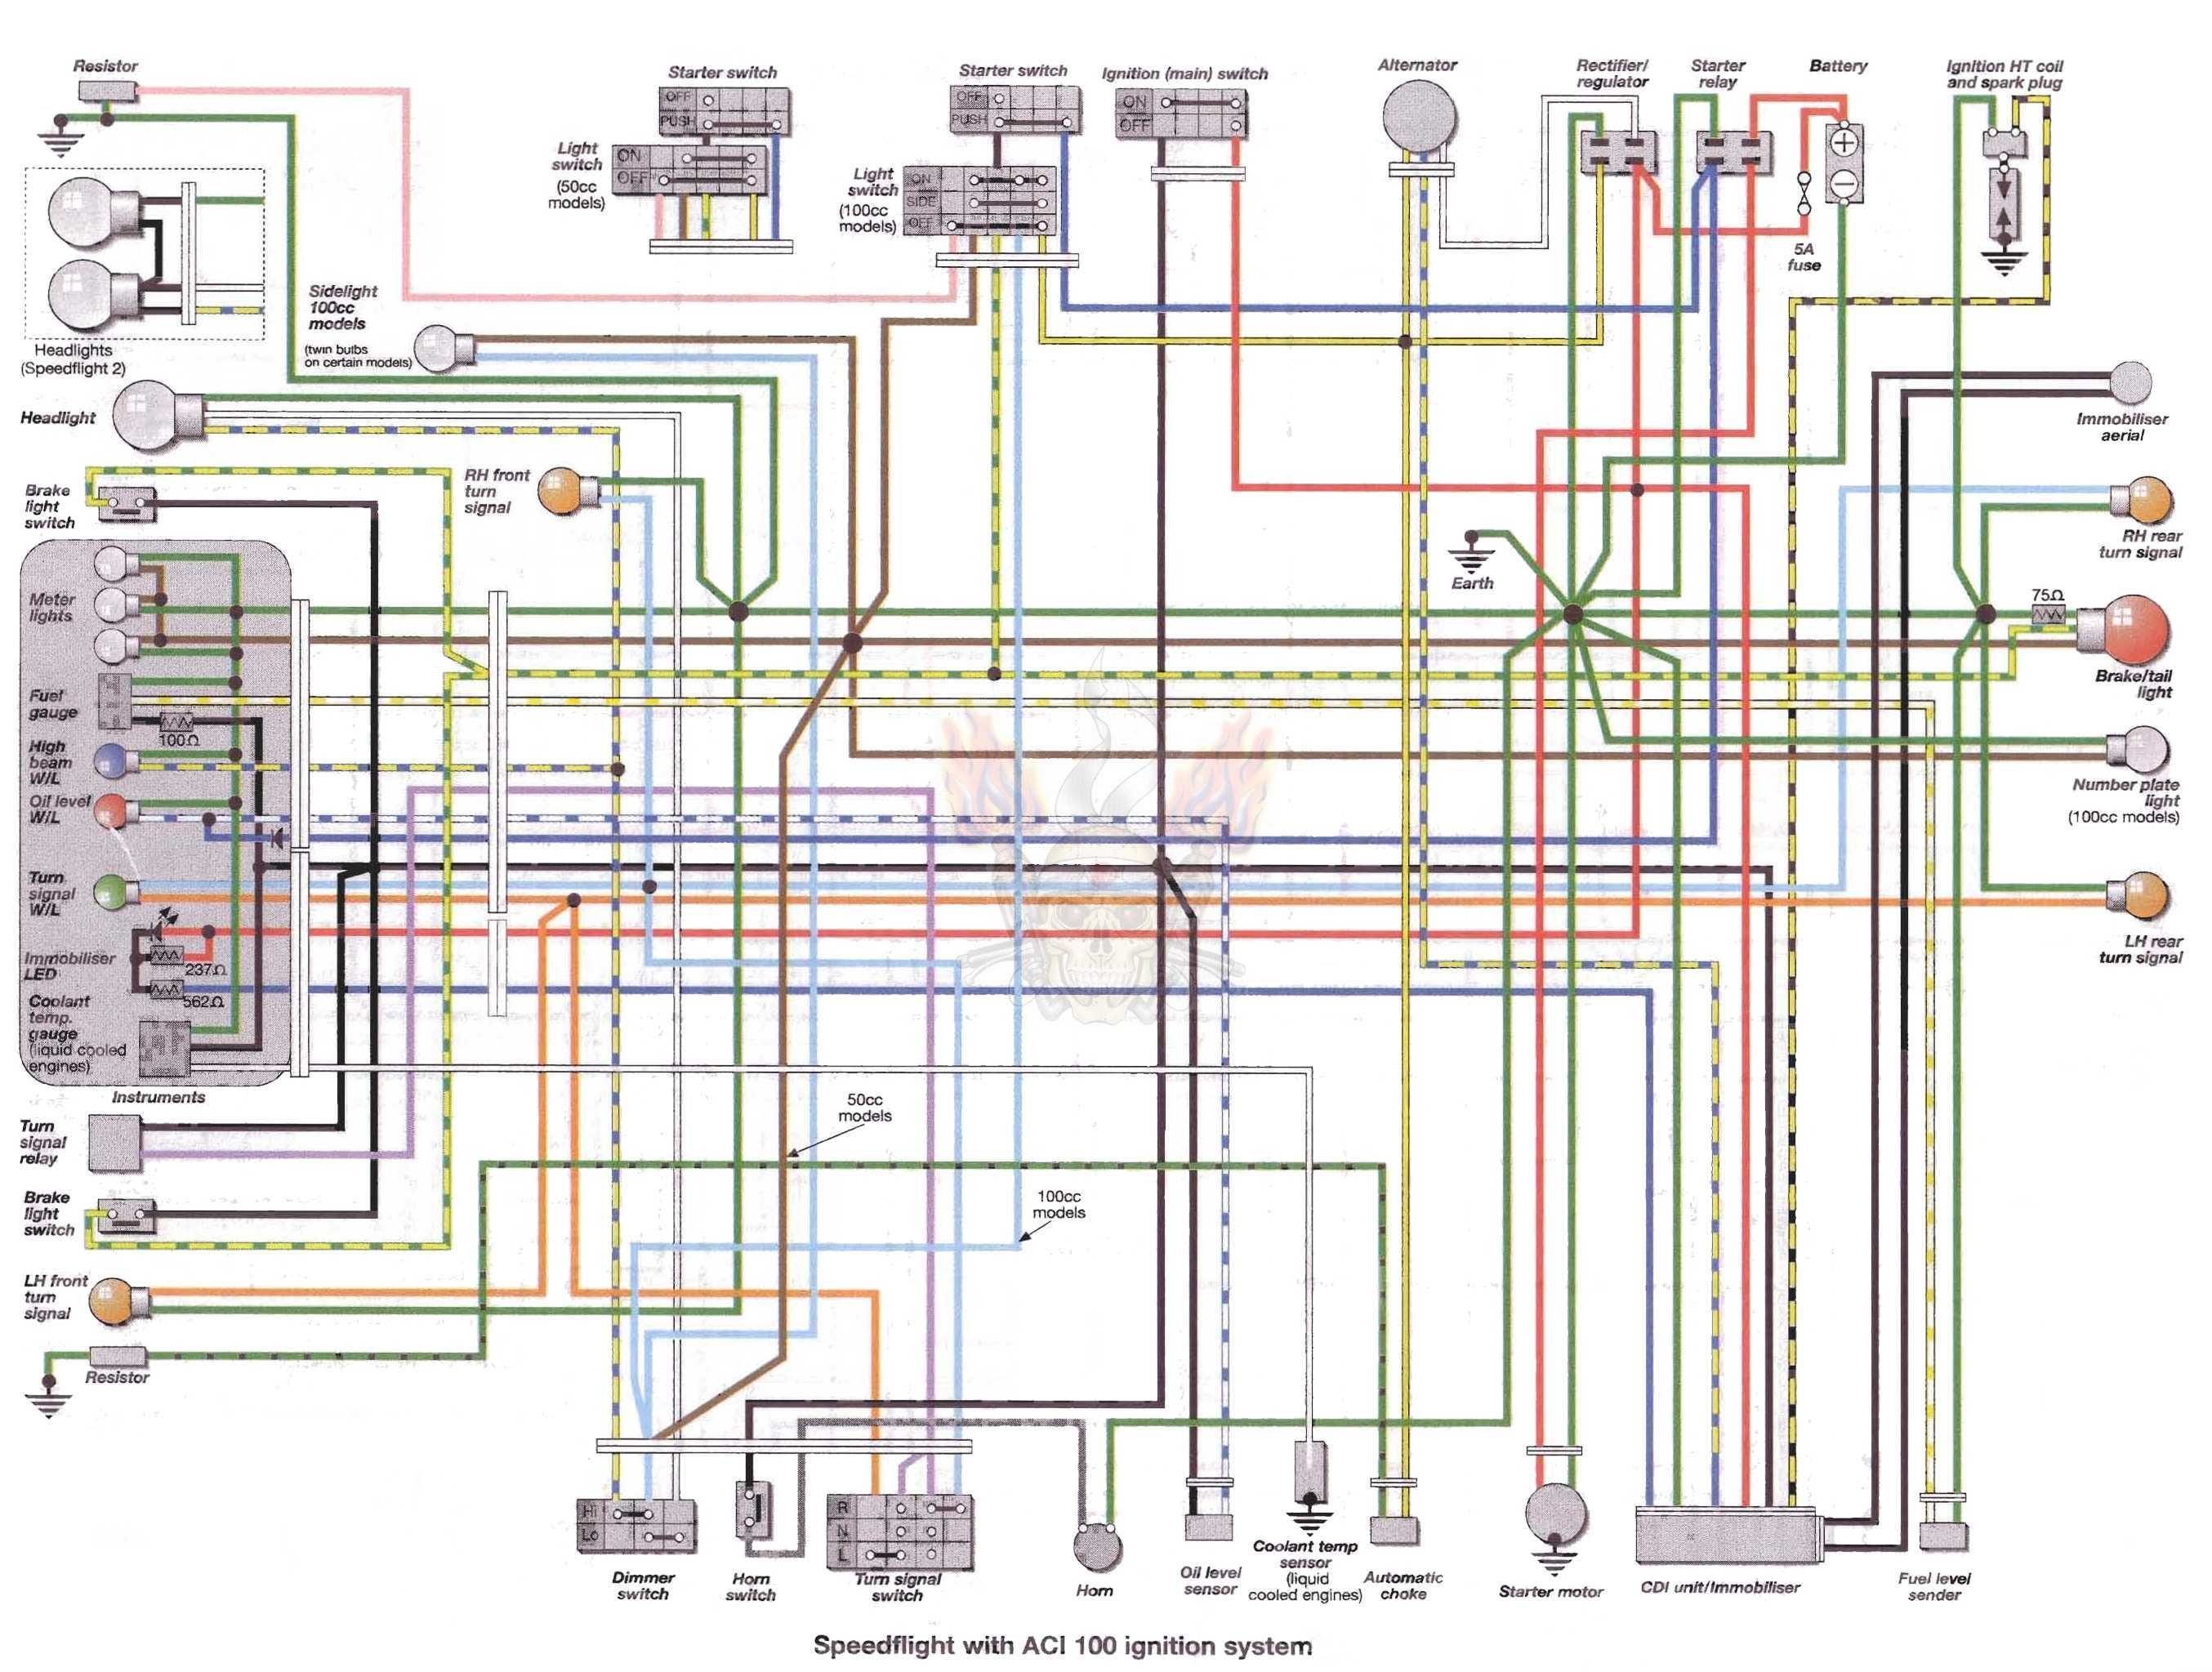 Ktm 350 Wiring Diagram 500 10 Kia